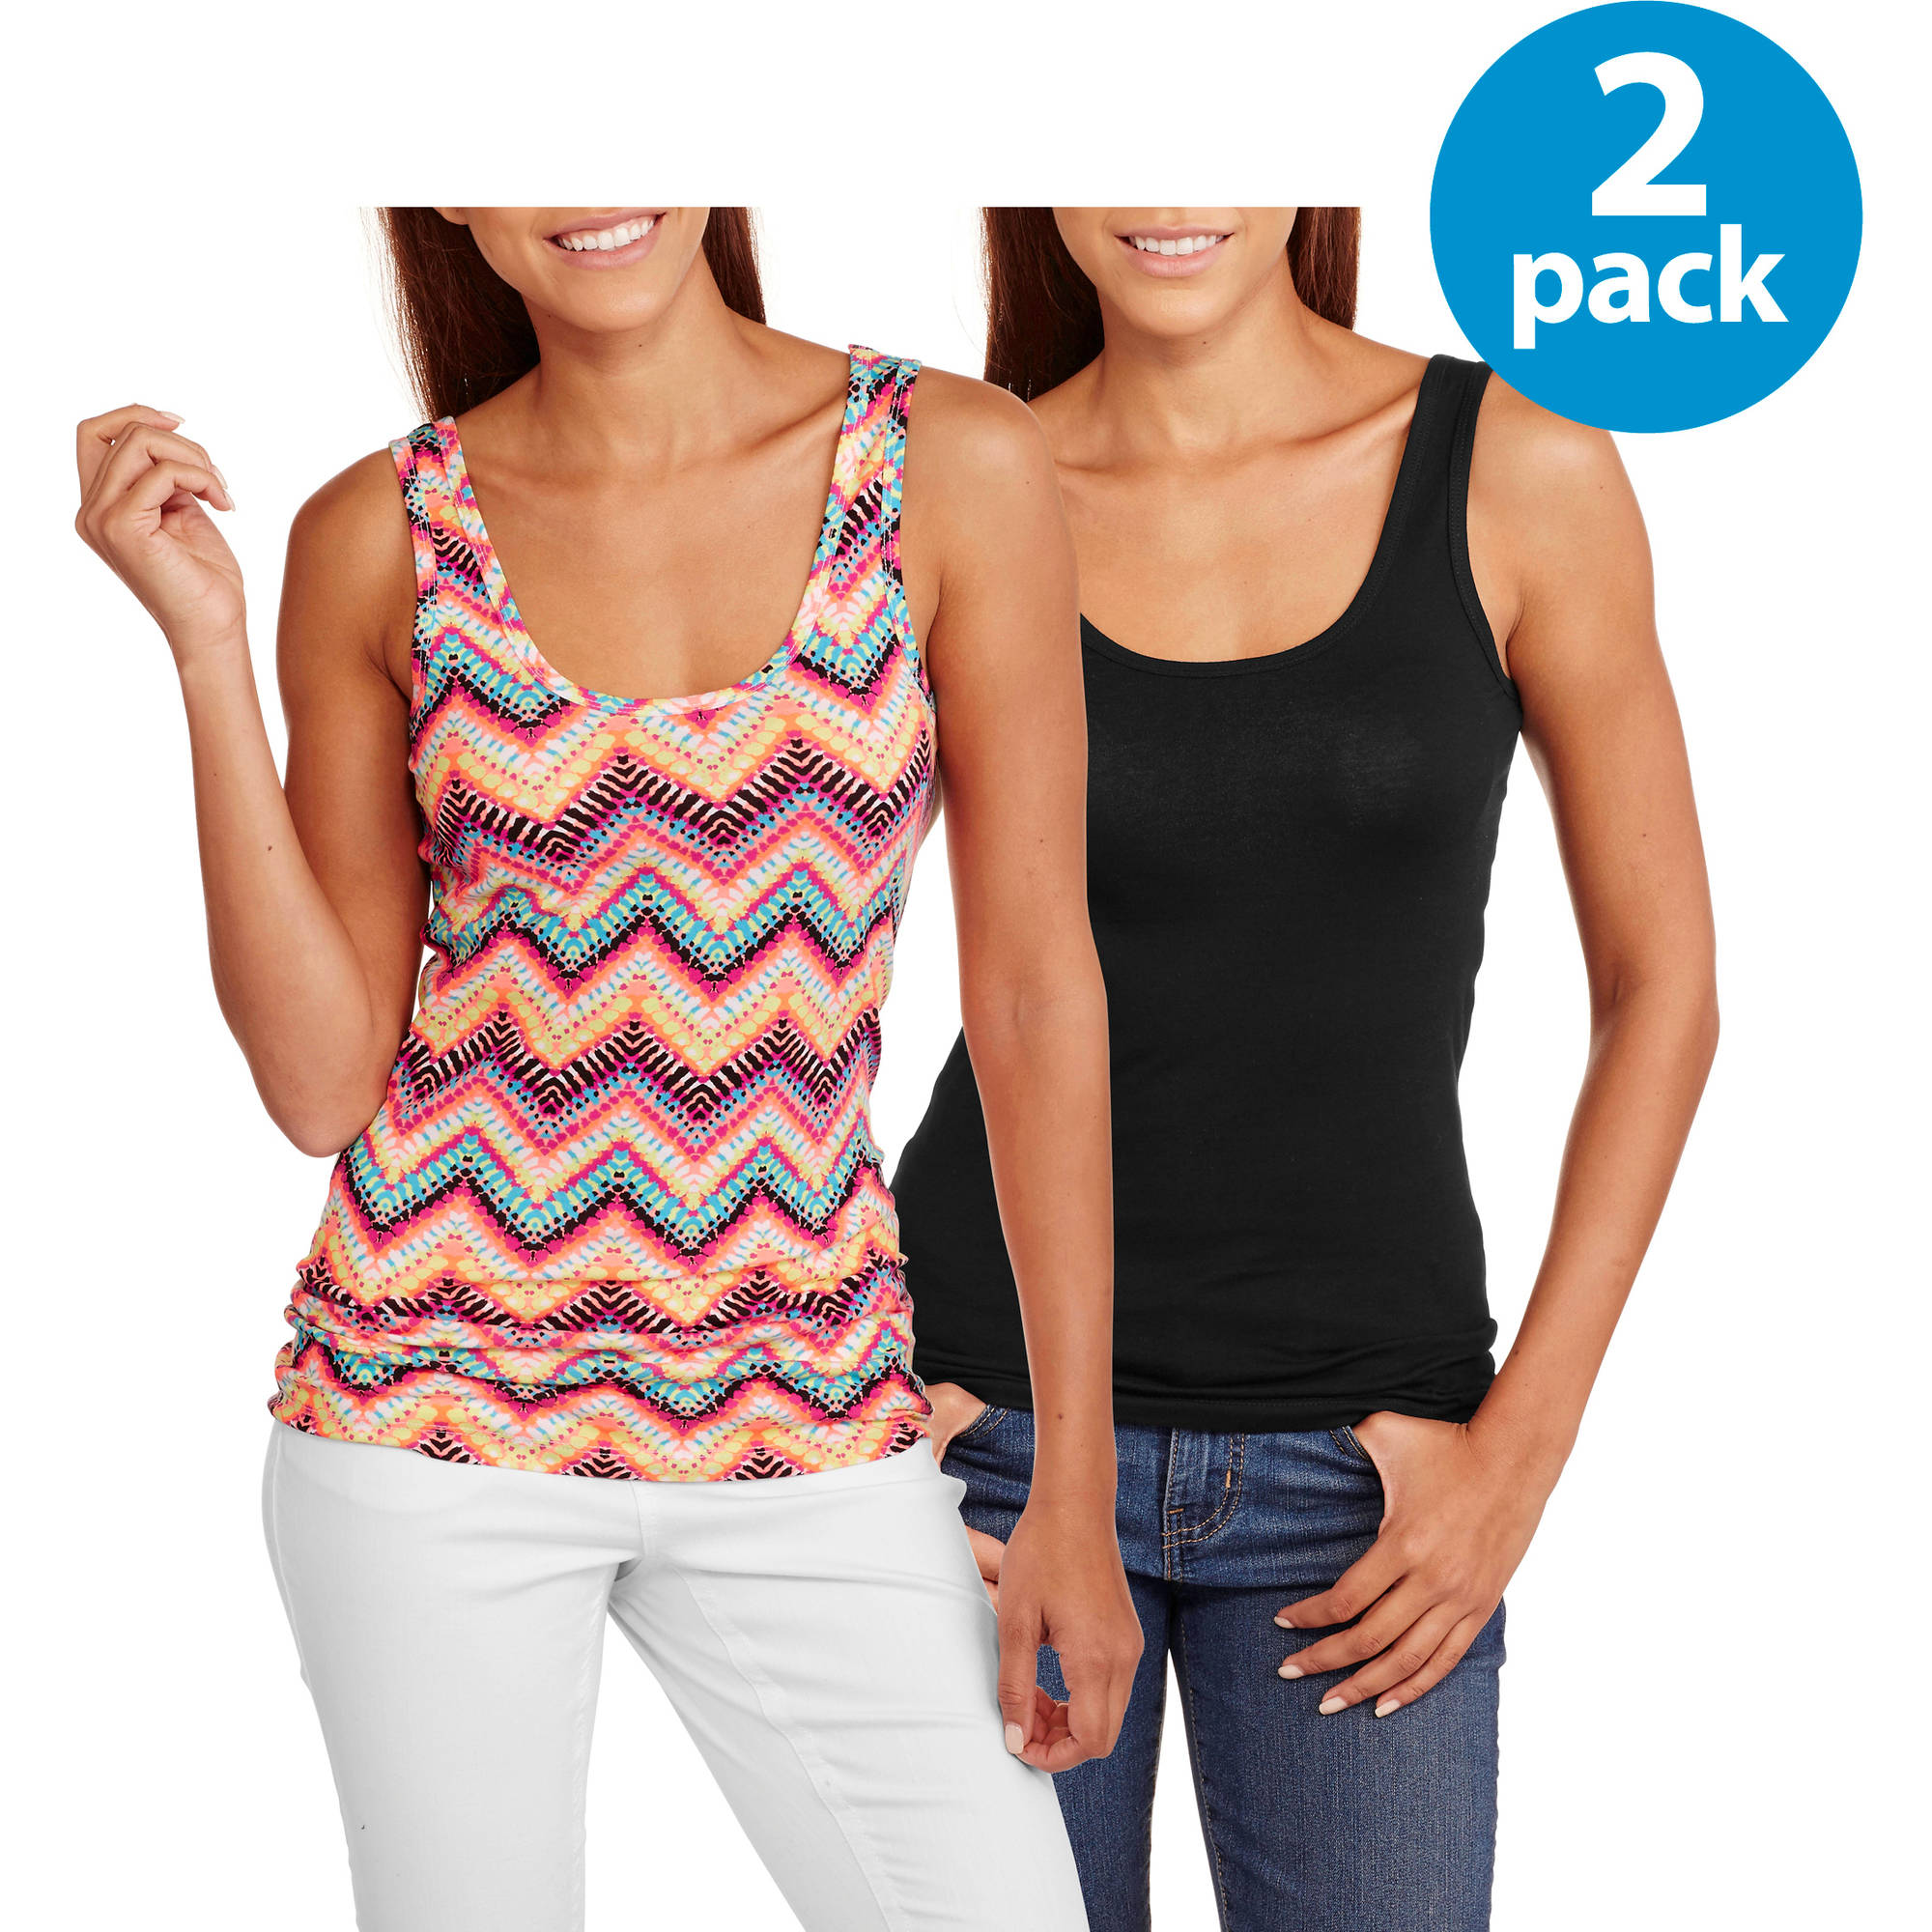 No Boundaries Juniors' Graphic Scoop Neck Tank 2 Pack